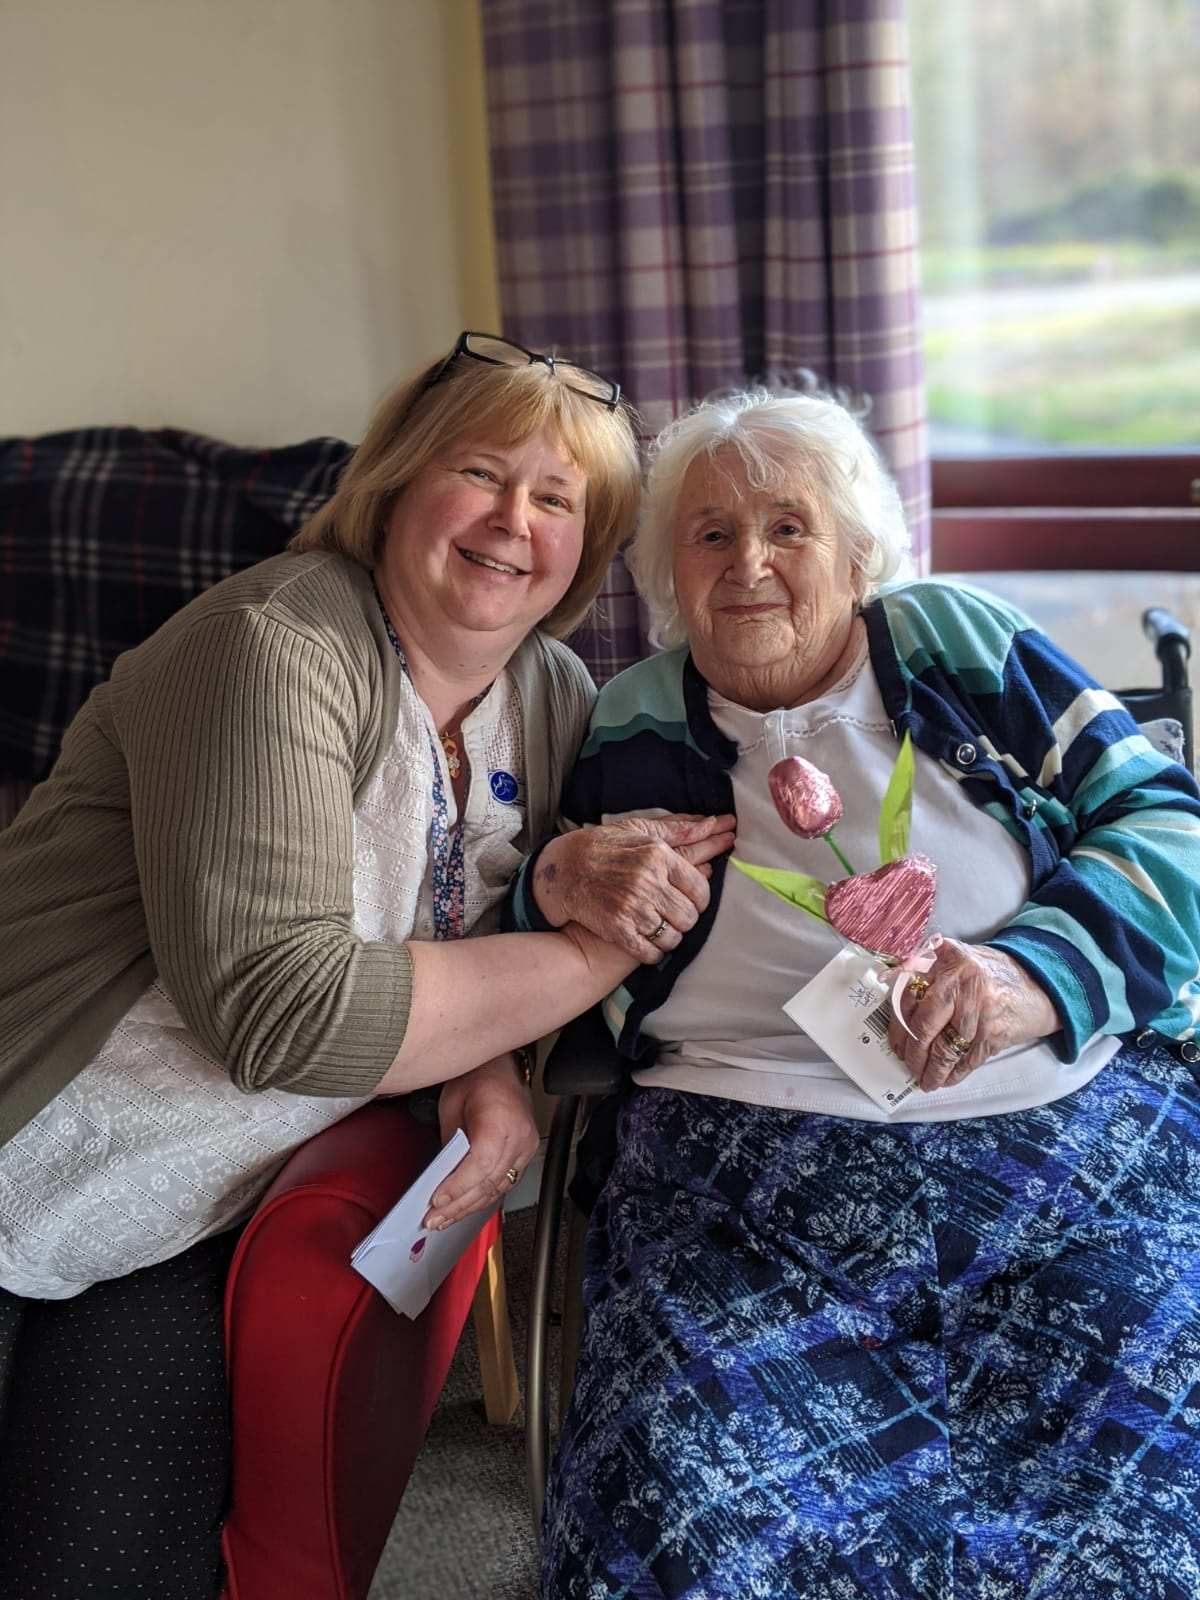 A daughter of a care home resident dedicates a poem to her home to champion social care during Care Home Open Week